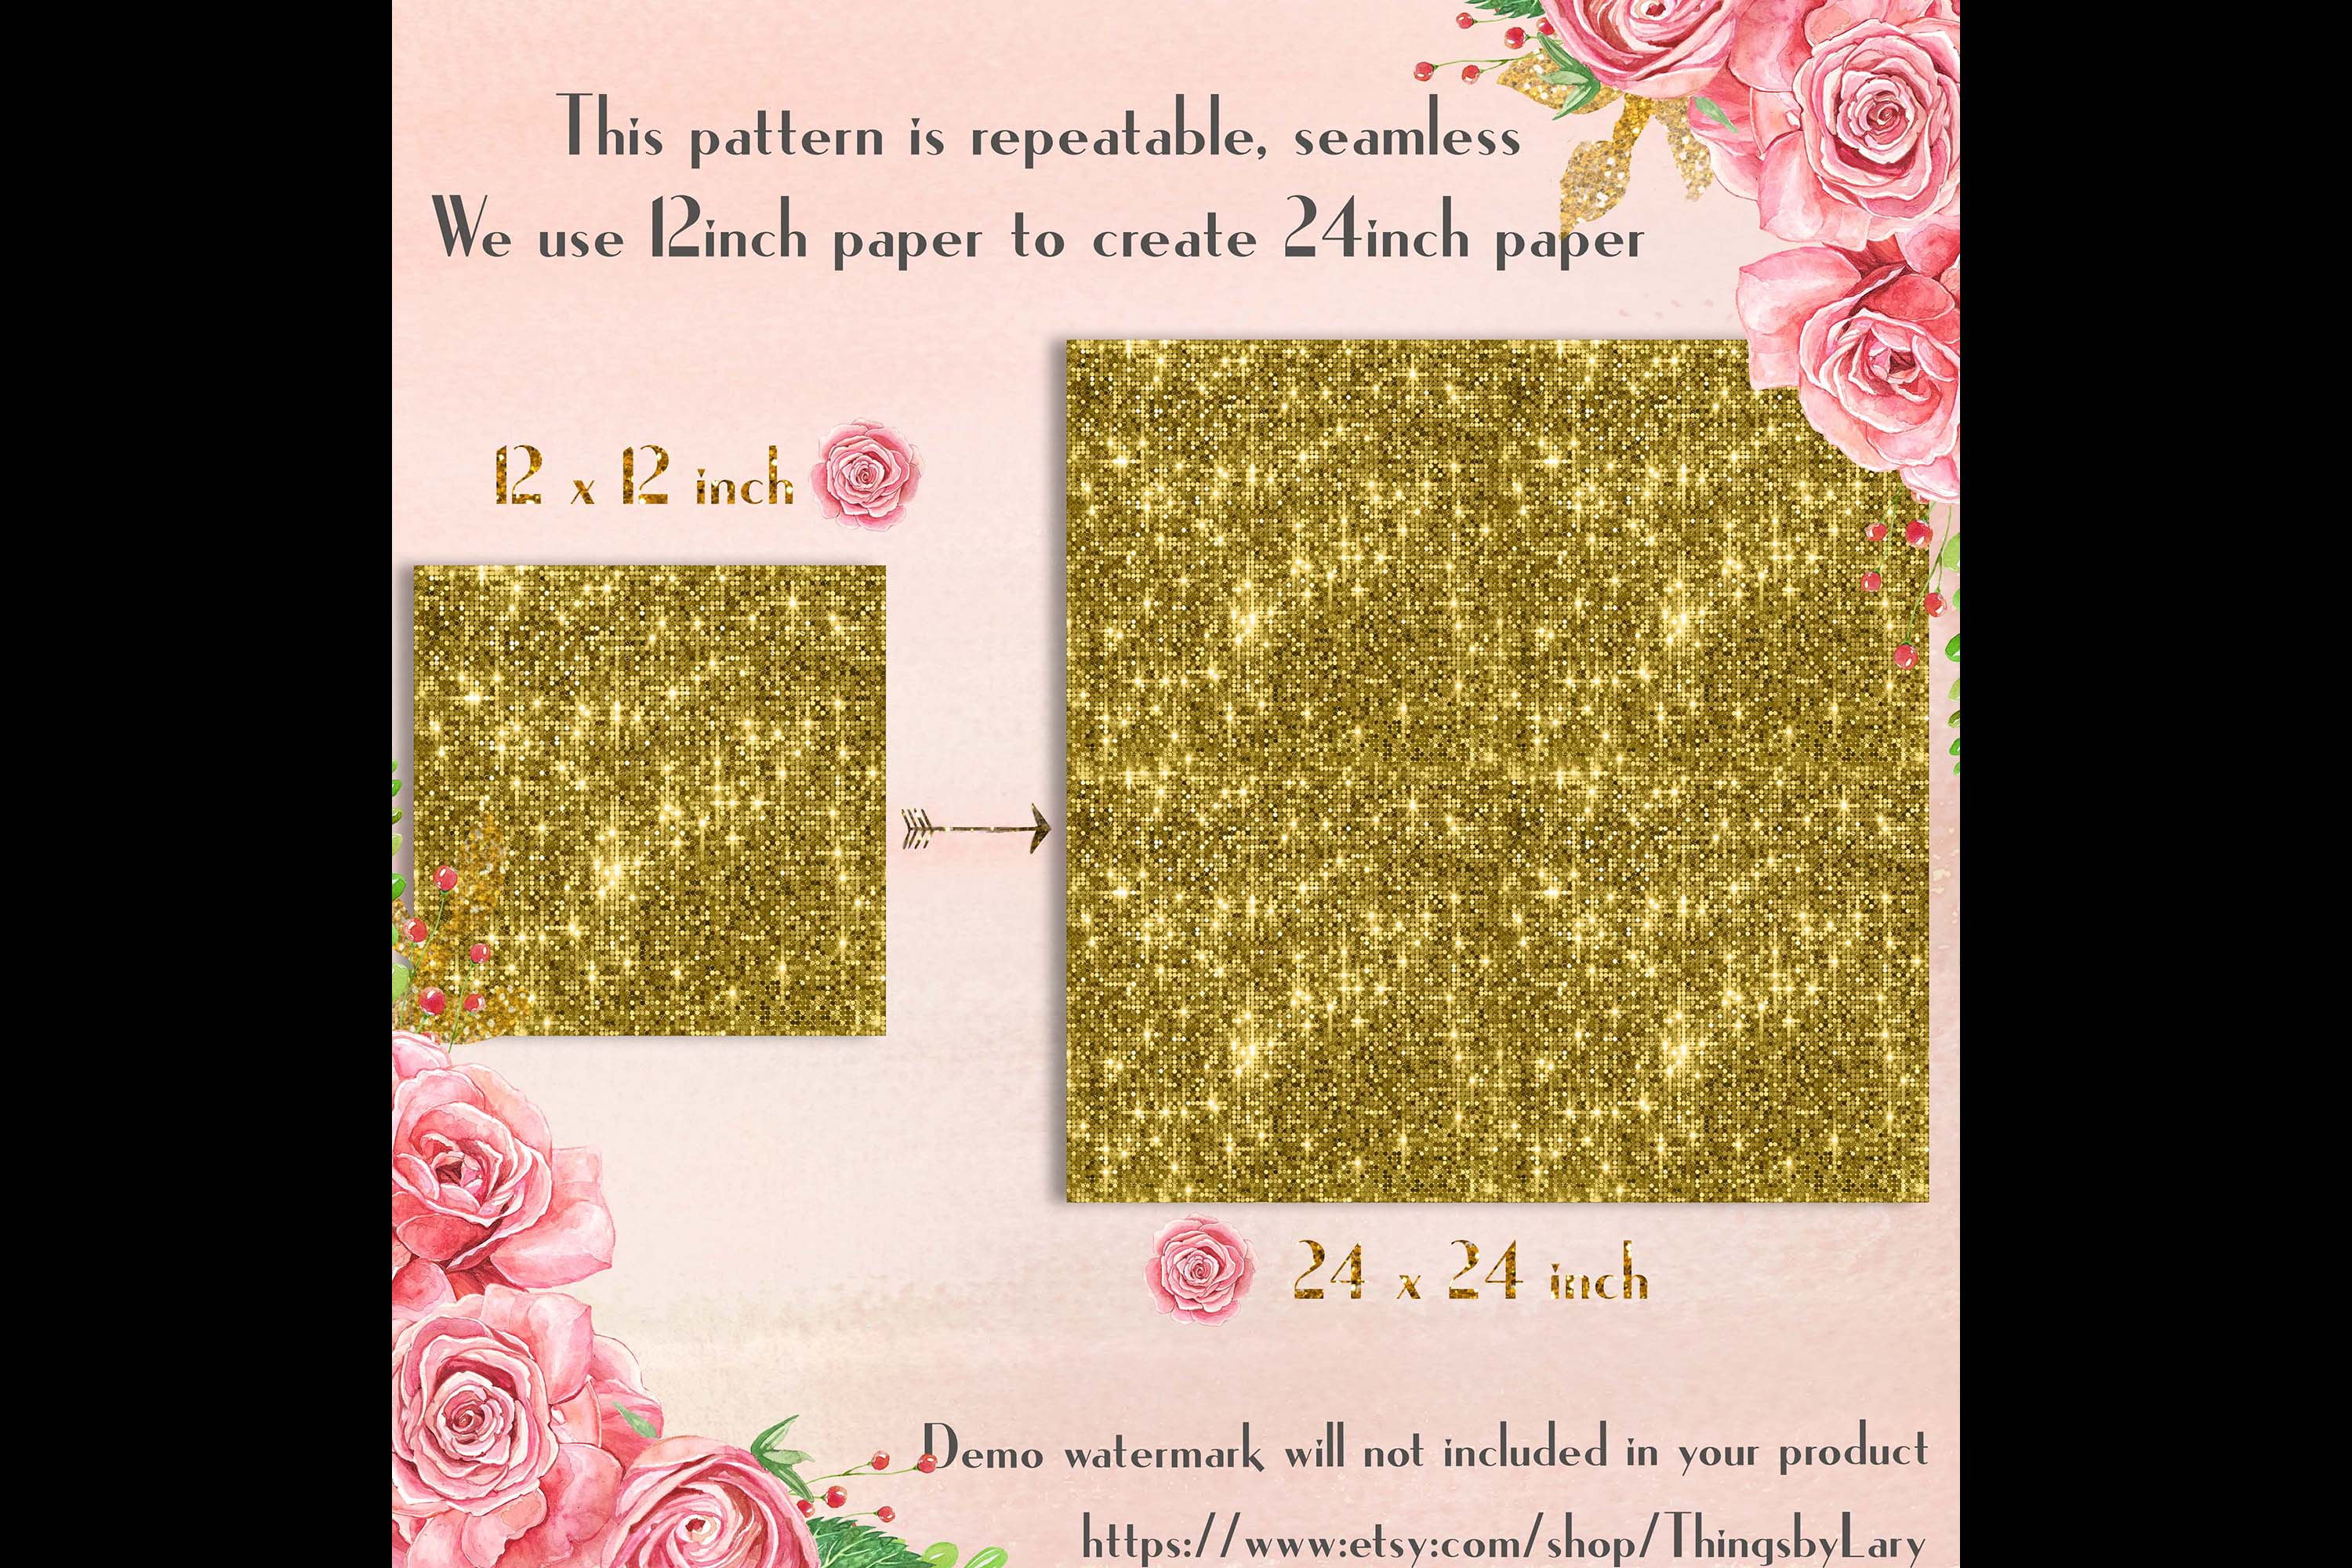 100 Seamless Glowing Bling Bling Disco Sequin Digital Papers example image 8